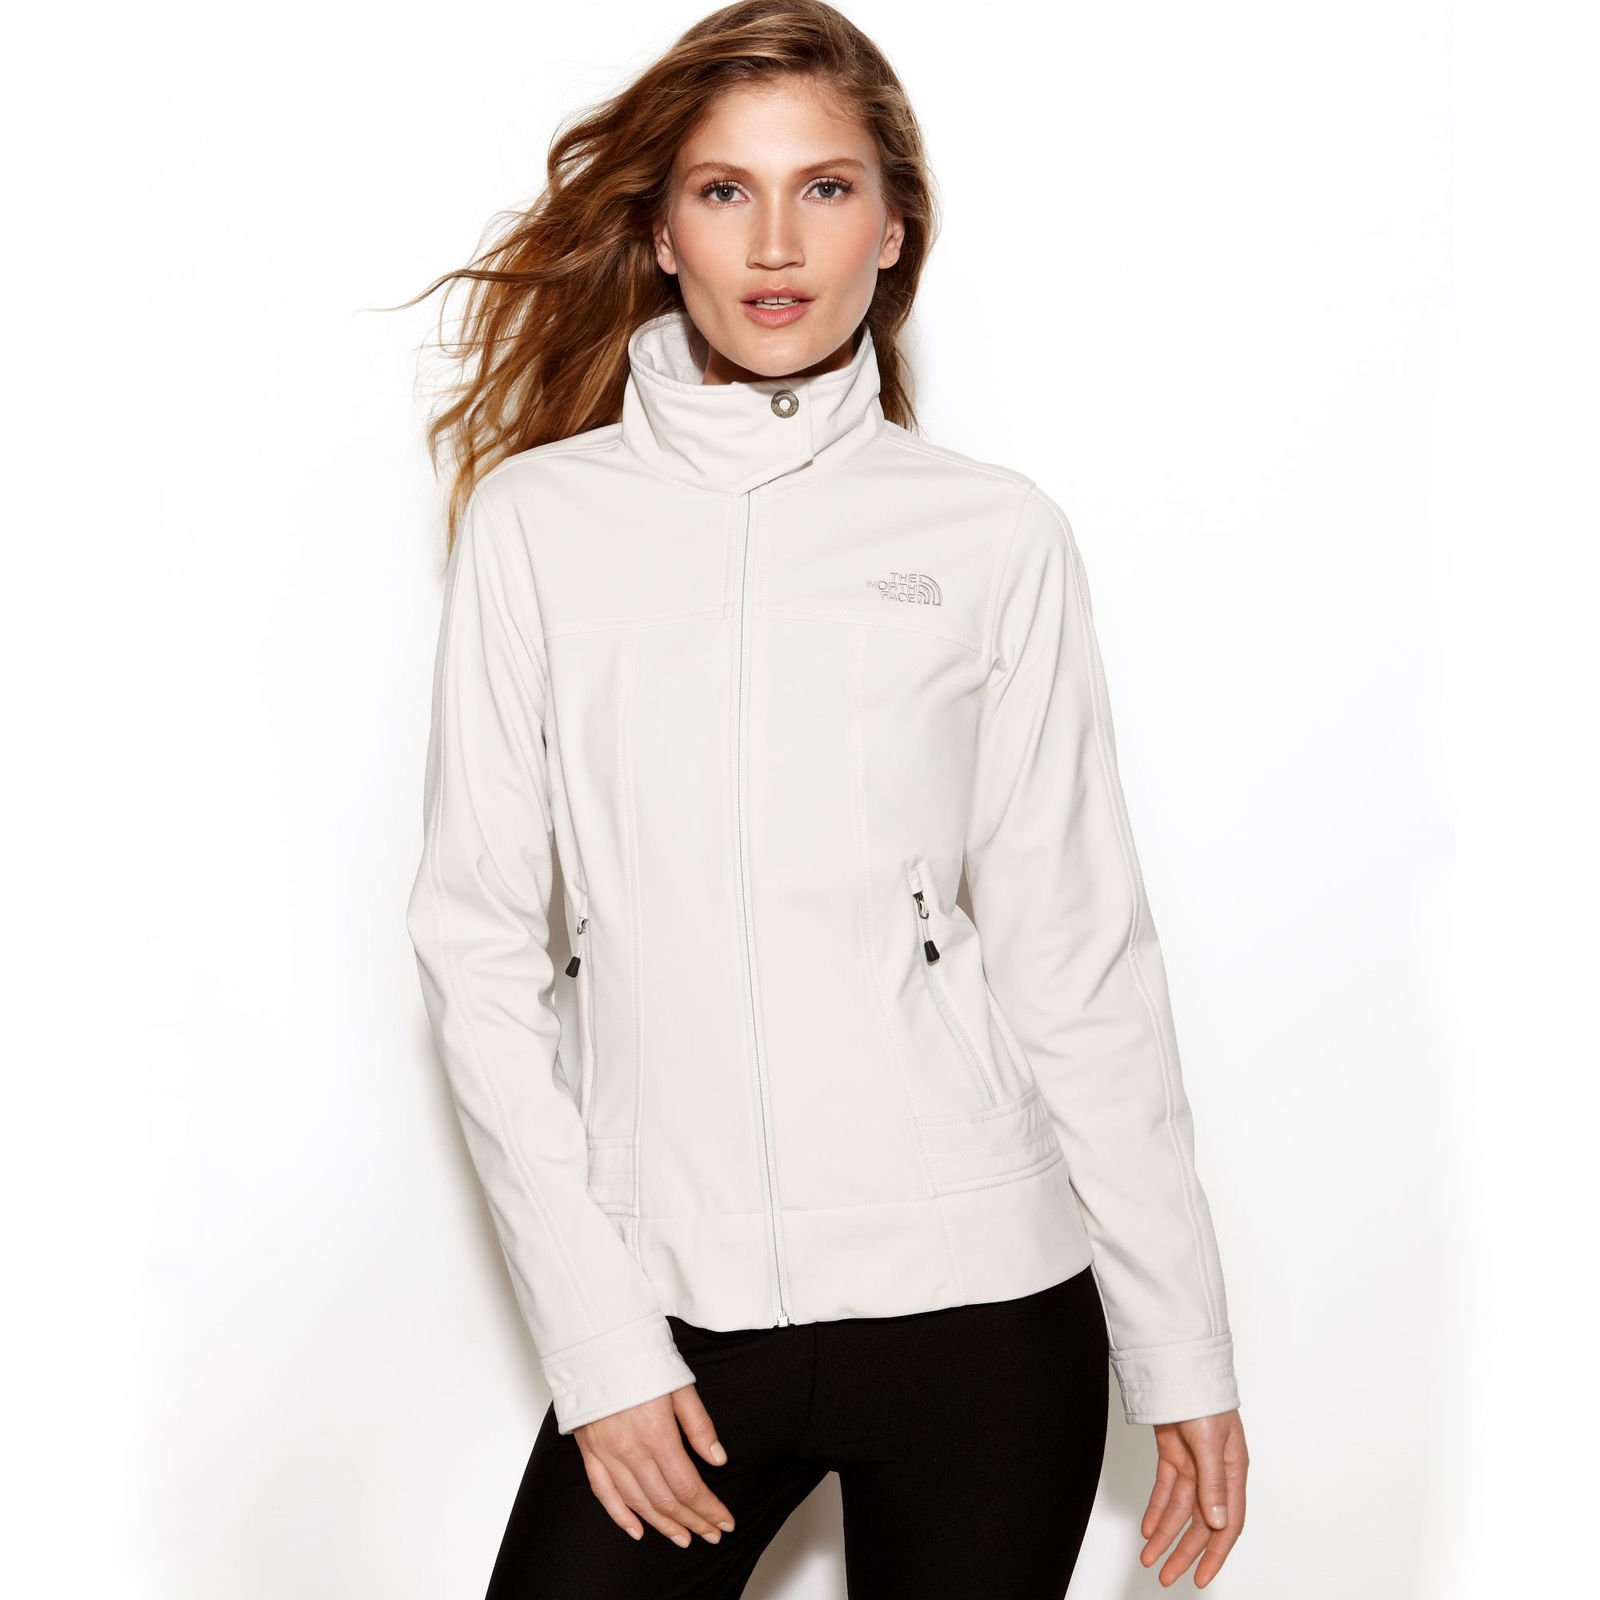 4455c9f30 Details about NWT The North Face Women's Active Fit Calentito 2 Jacket  White Size Medium